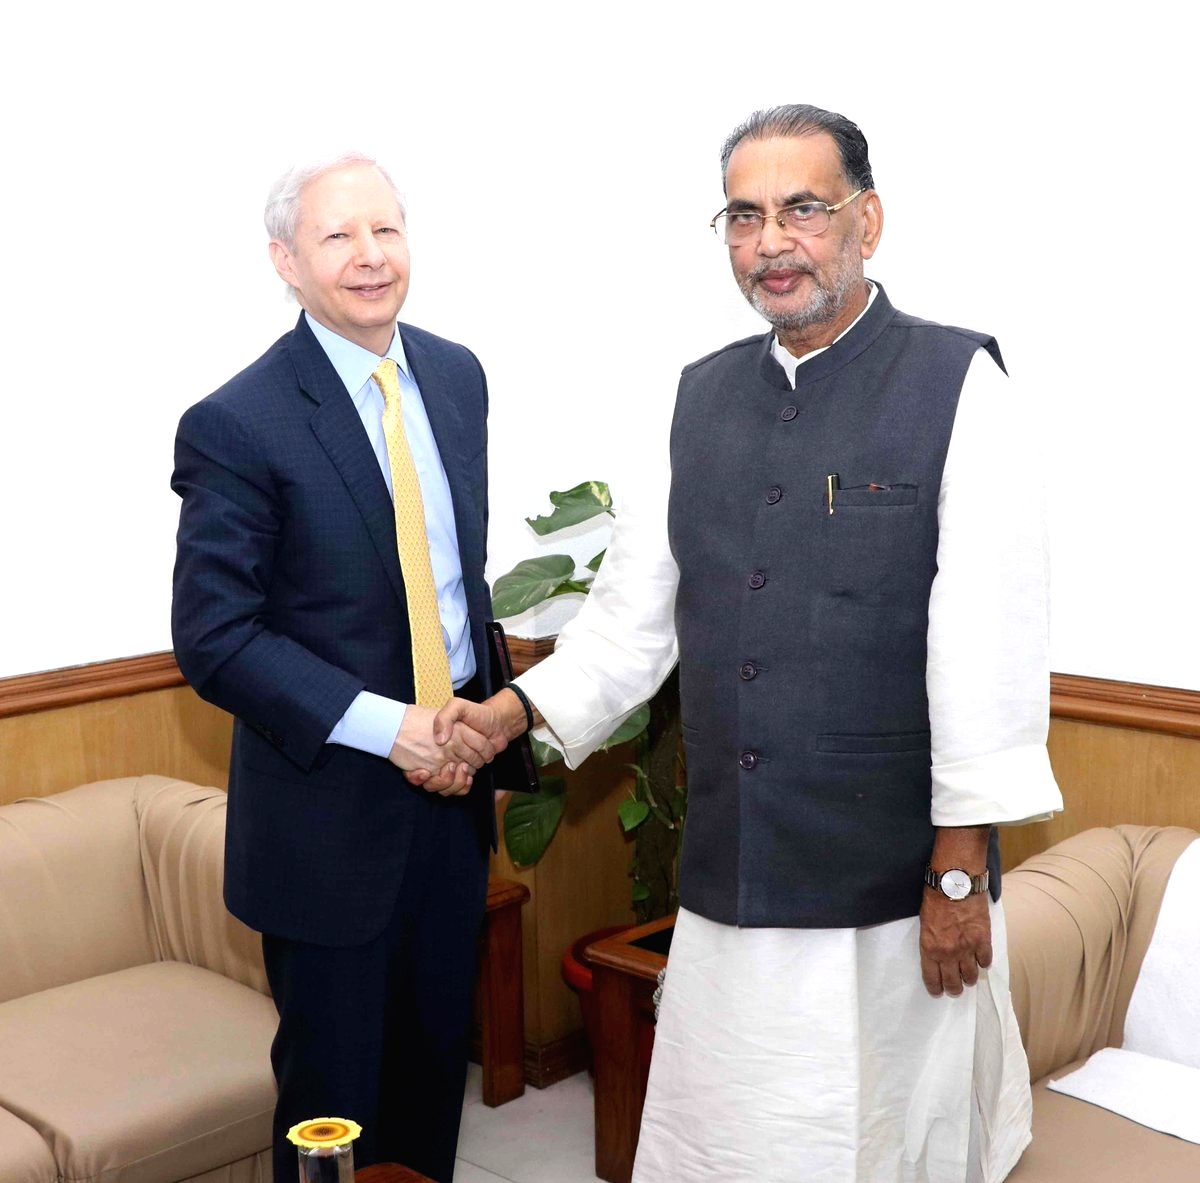 :New Delhi: US Ambassador to India Kenneth I. Juster meets Union Agriculture and Farmers Welfare Minister Radha Mohan Singh in New Delhi, on Oct 17, 2018. (Photo: IANS/PIB).